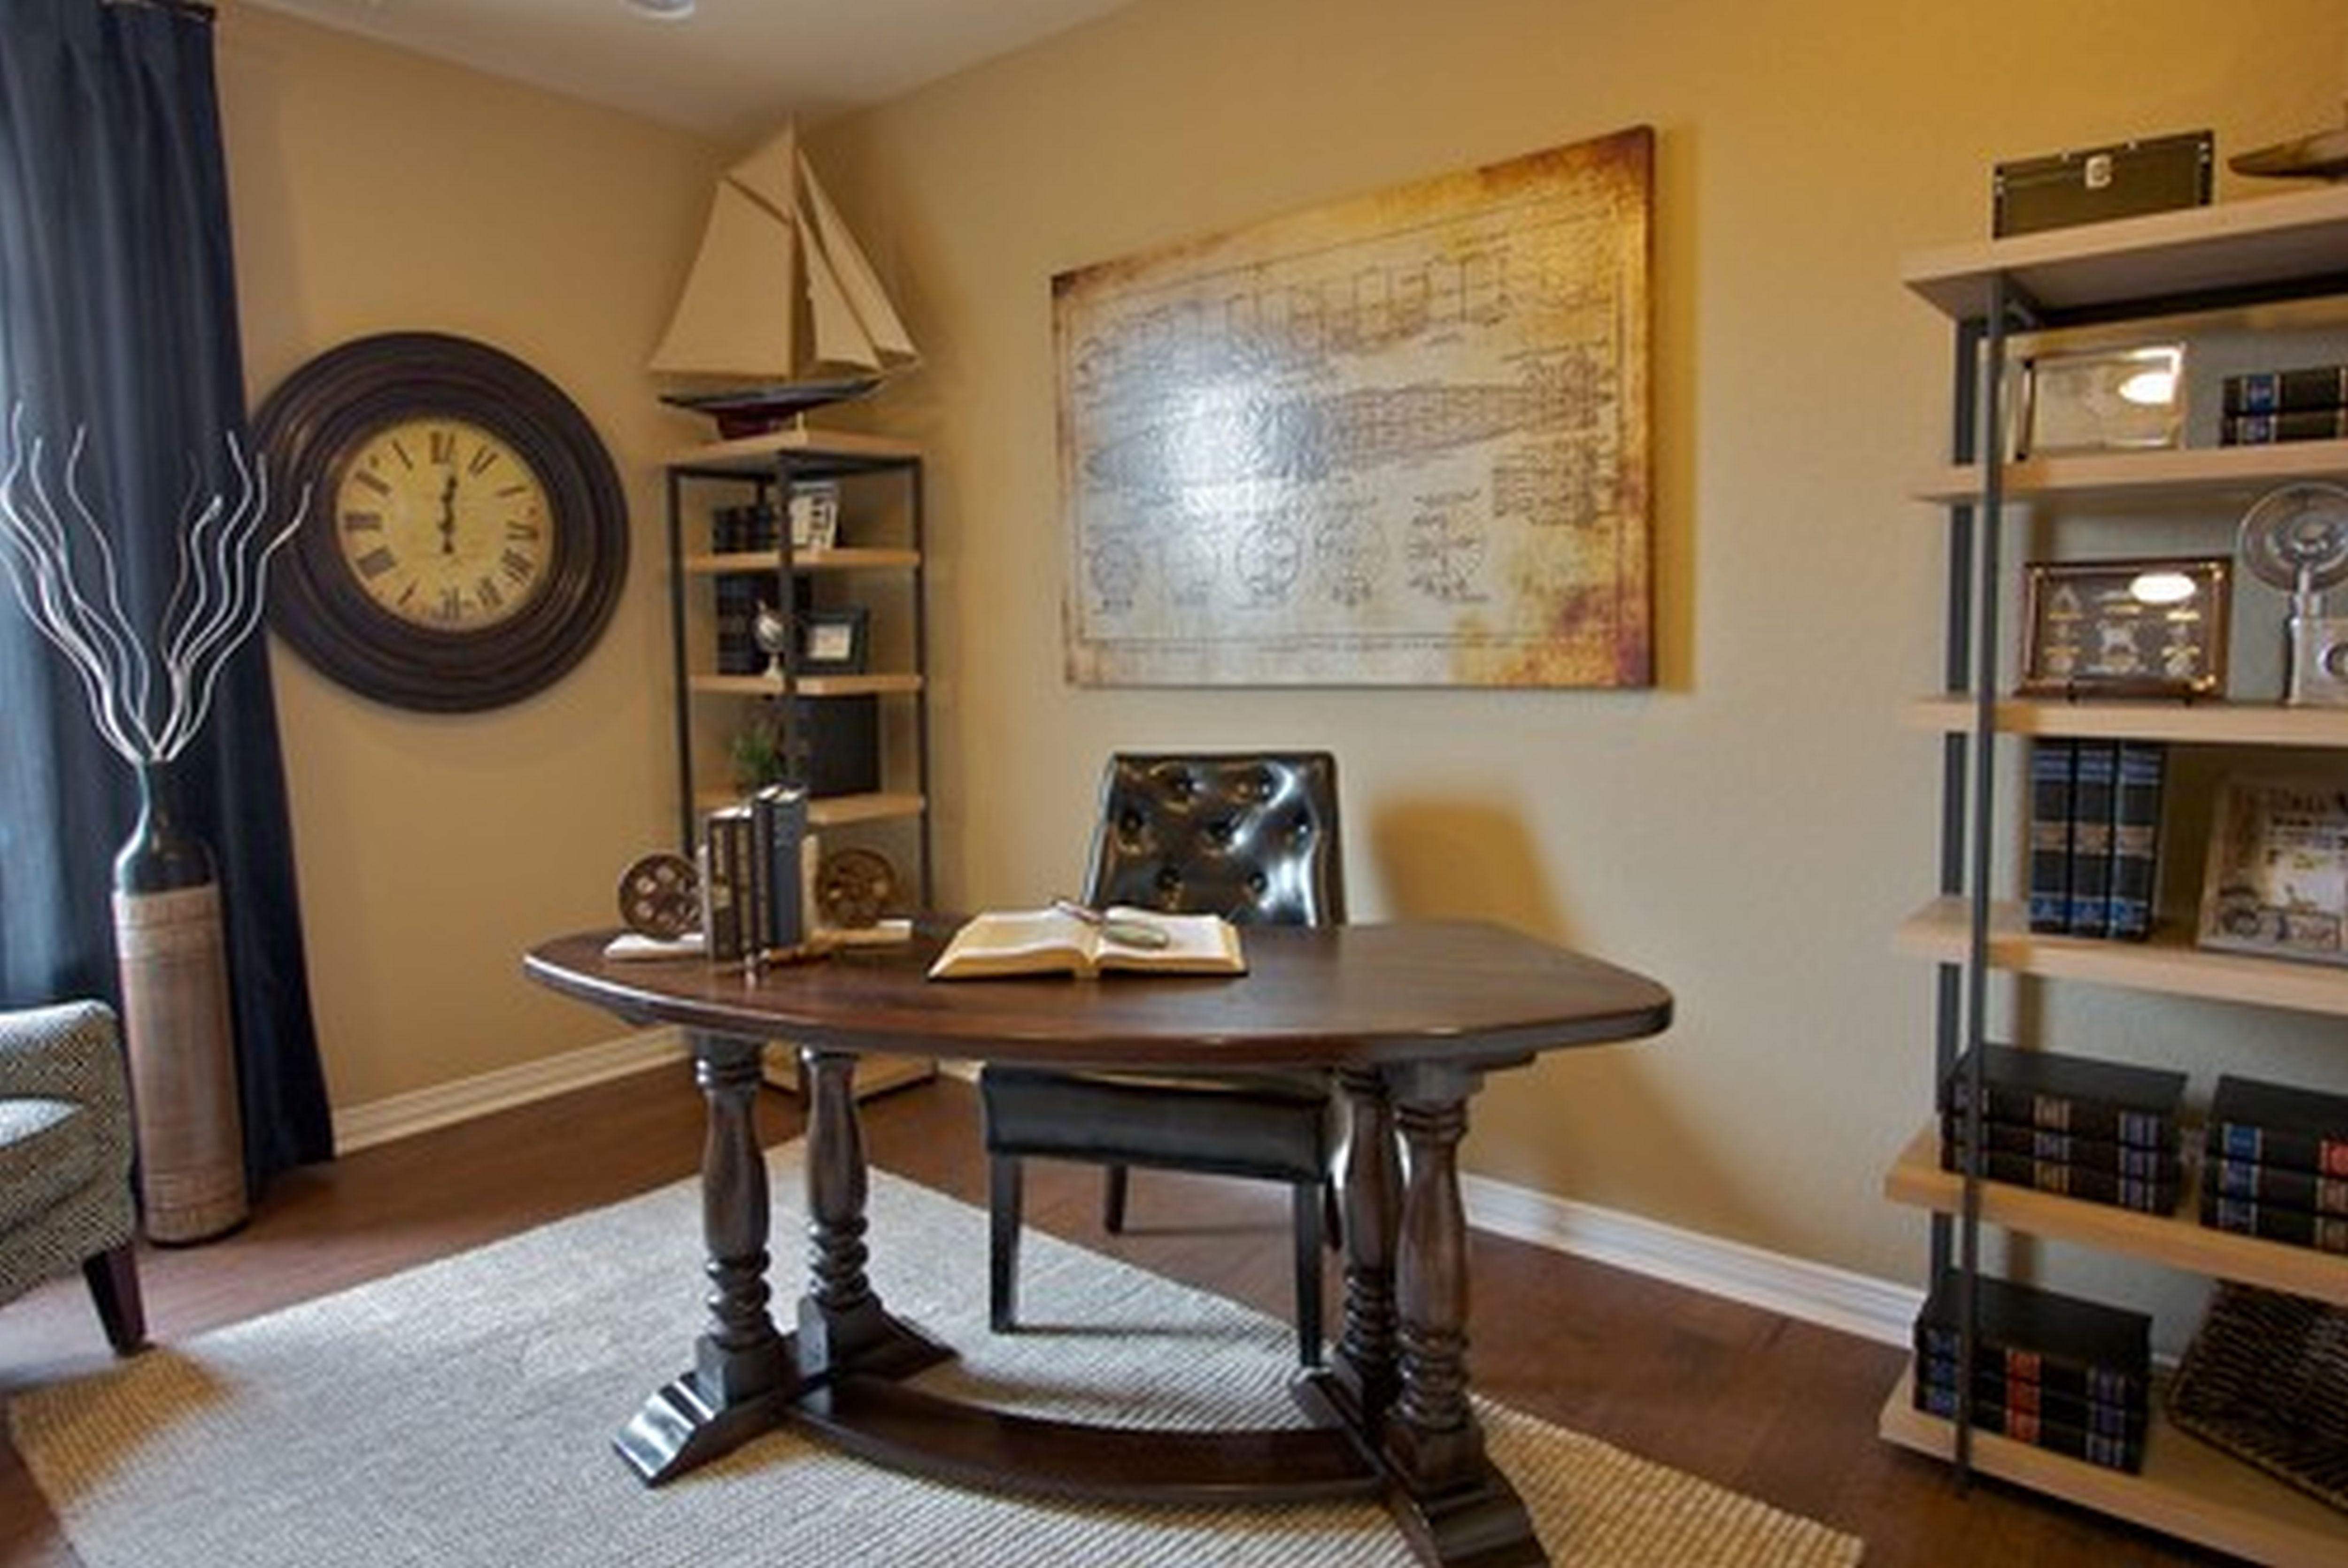 Brilliant Office Decor Ideas with Tidy Bookshelves and Curve Table on Hardwood Flooring